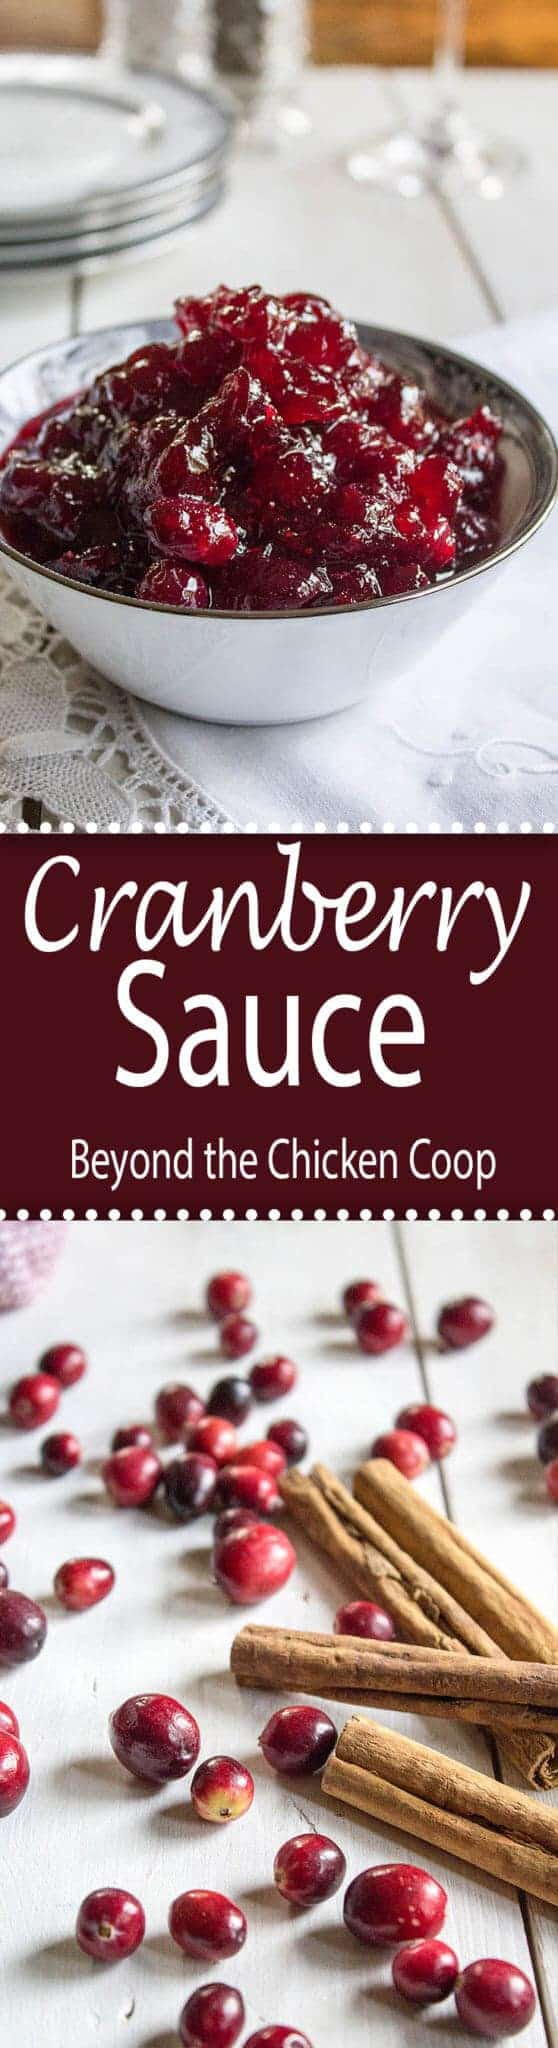 This delicious whole berry cranberry sauce is made with just four simple ingredients.